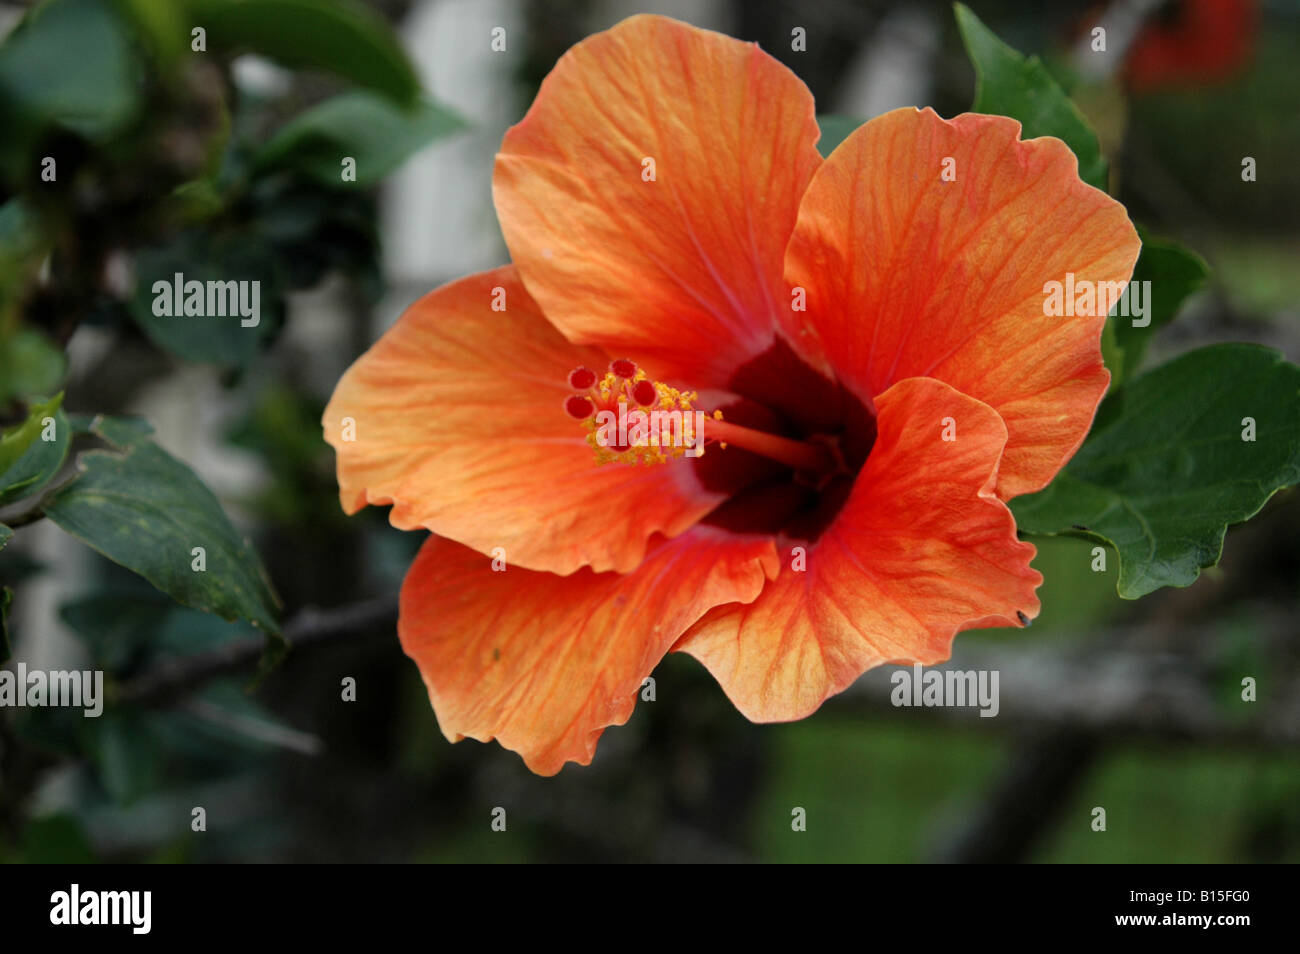 Orange colour hibiscus flower stock photos orange colour hibiscus close up of a orange colour hibiscus flower stock image izmirmasajfo